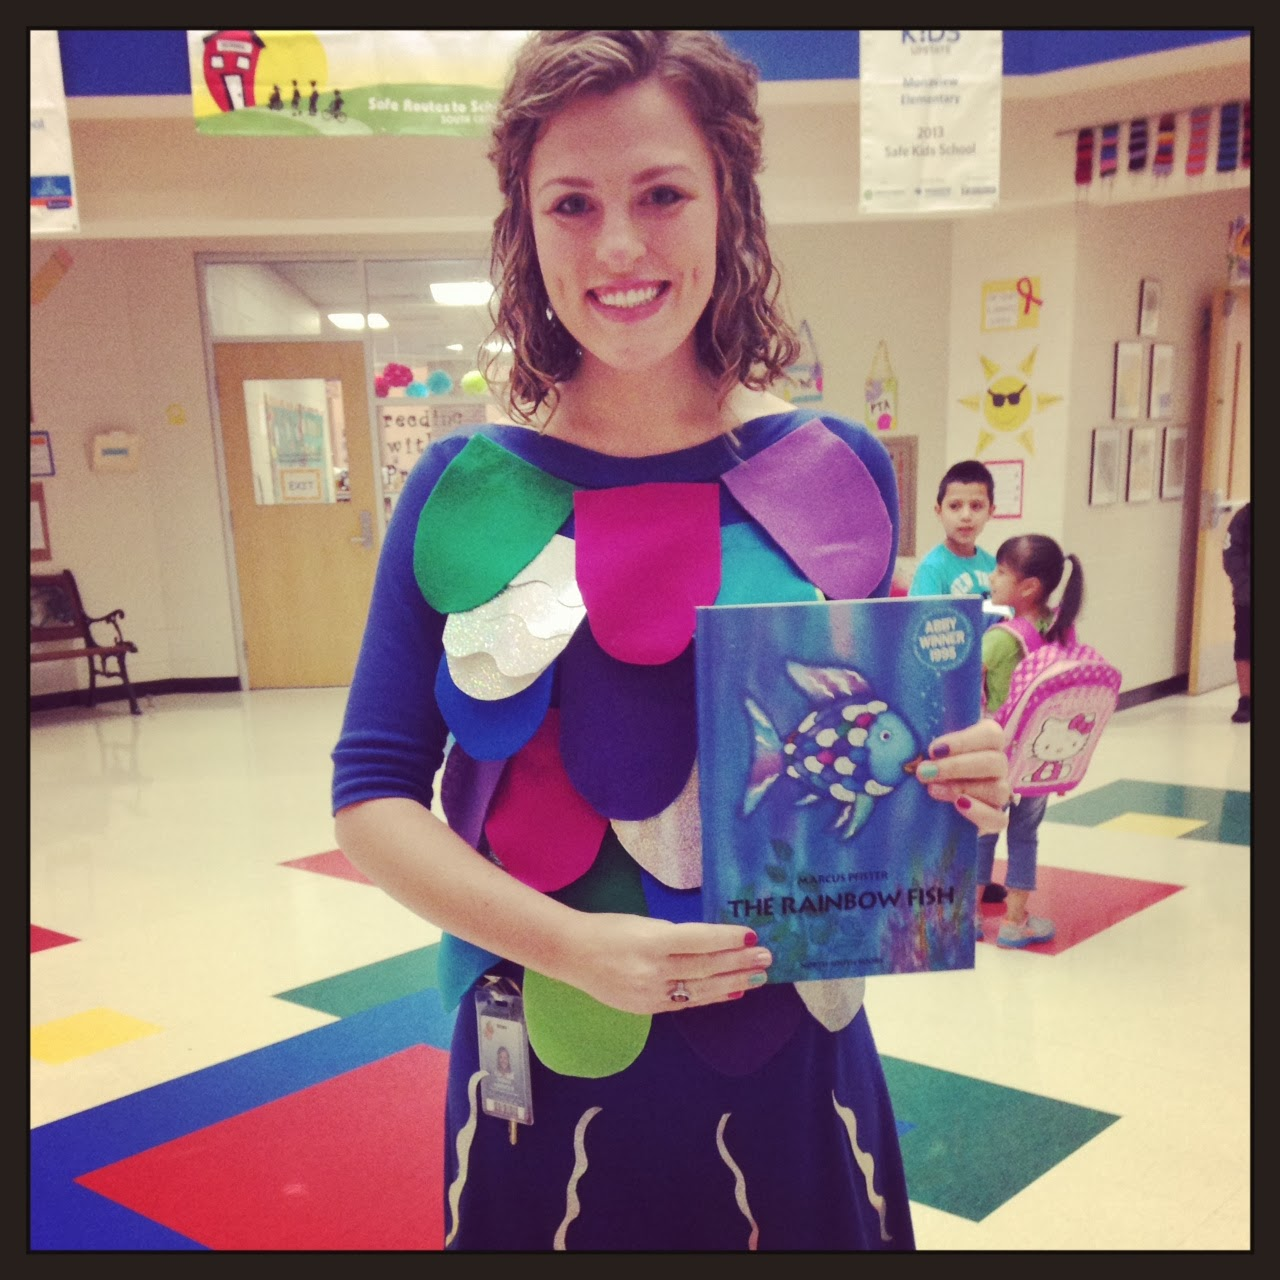 Confessions of a school counselor a snapshot of october for Rainbow fish costume